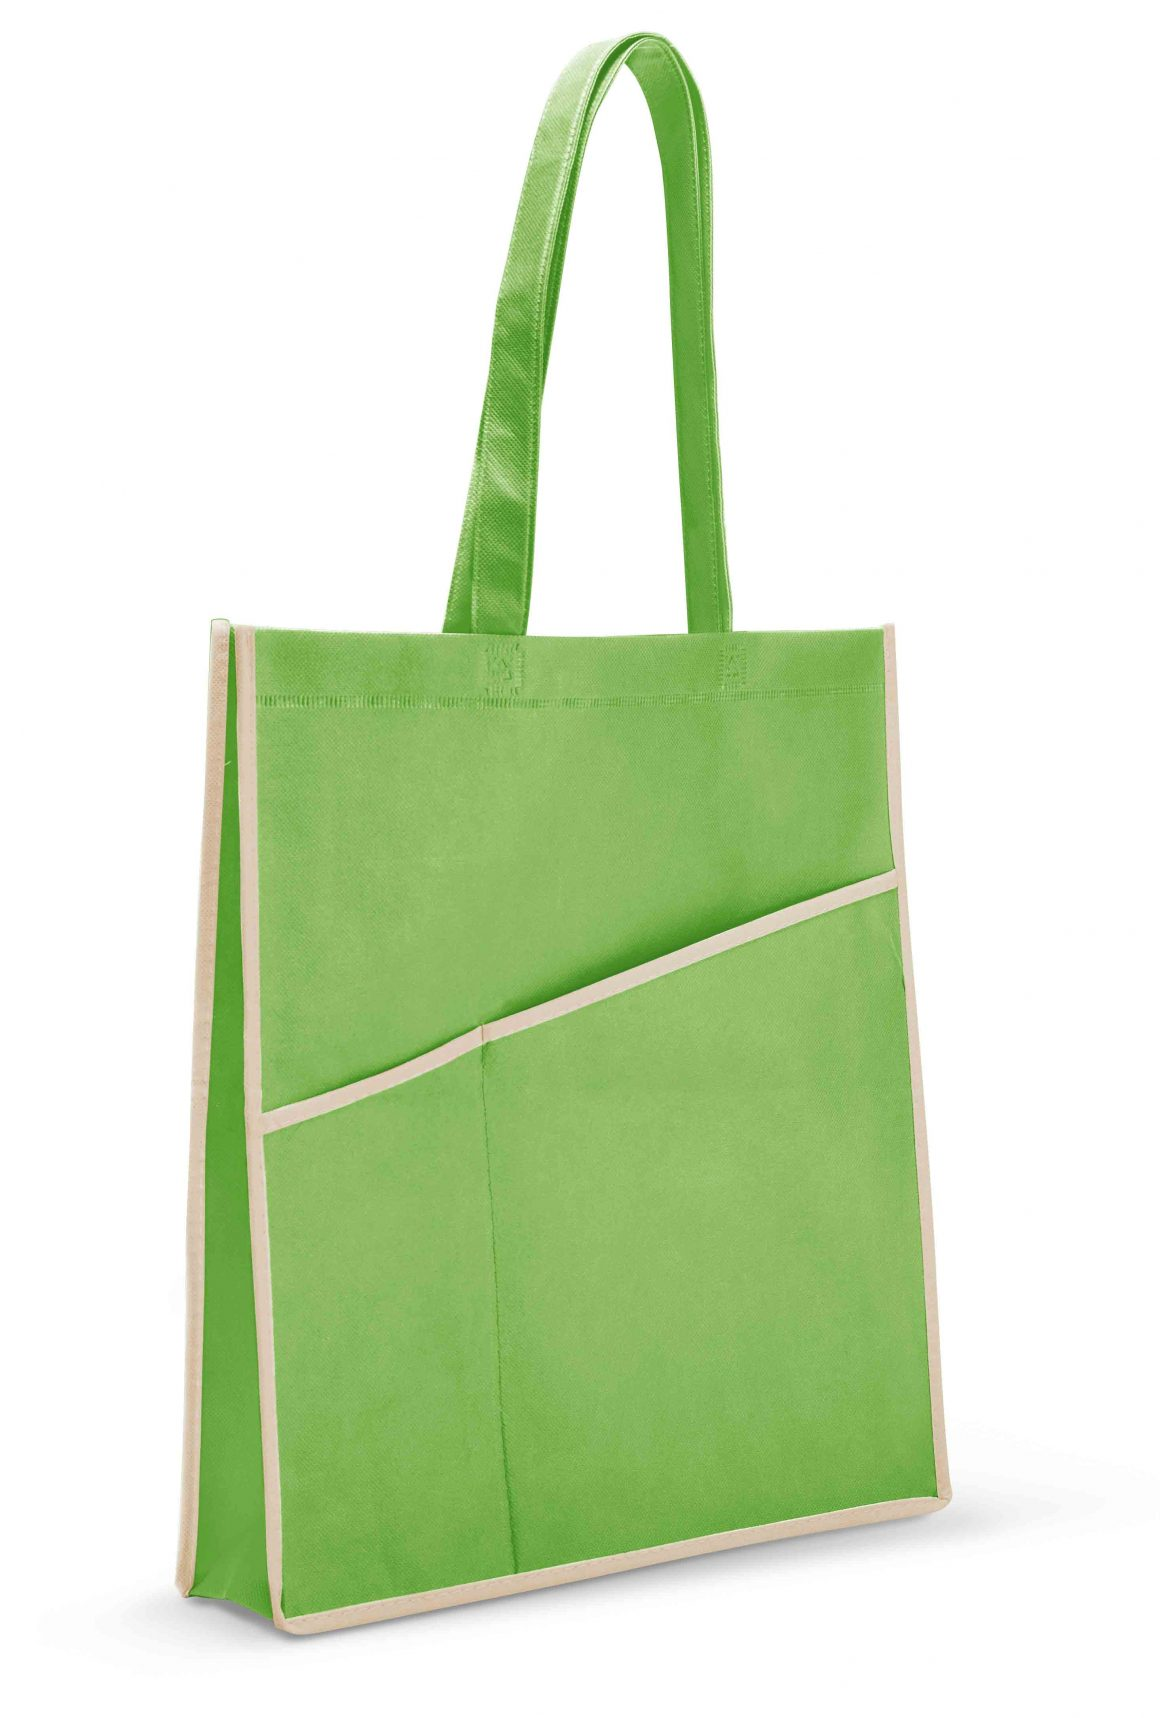 Lost Withiel Environmentally friendly Bag Product Code GP92857